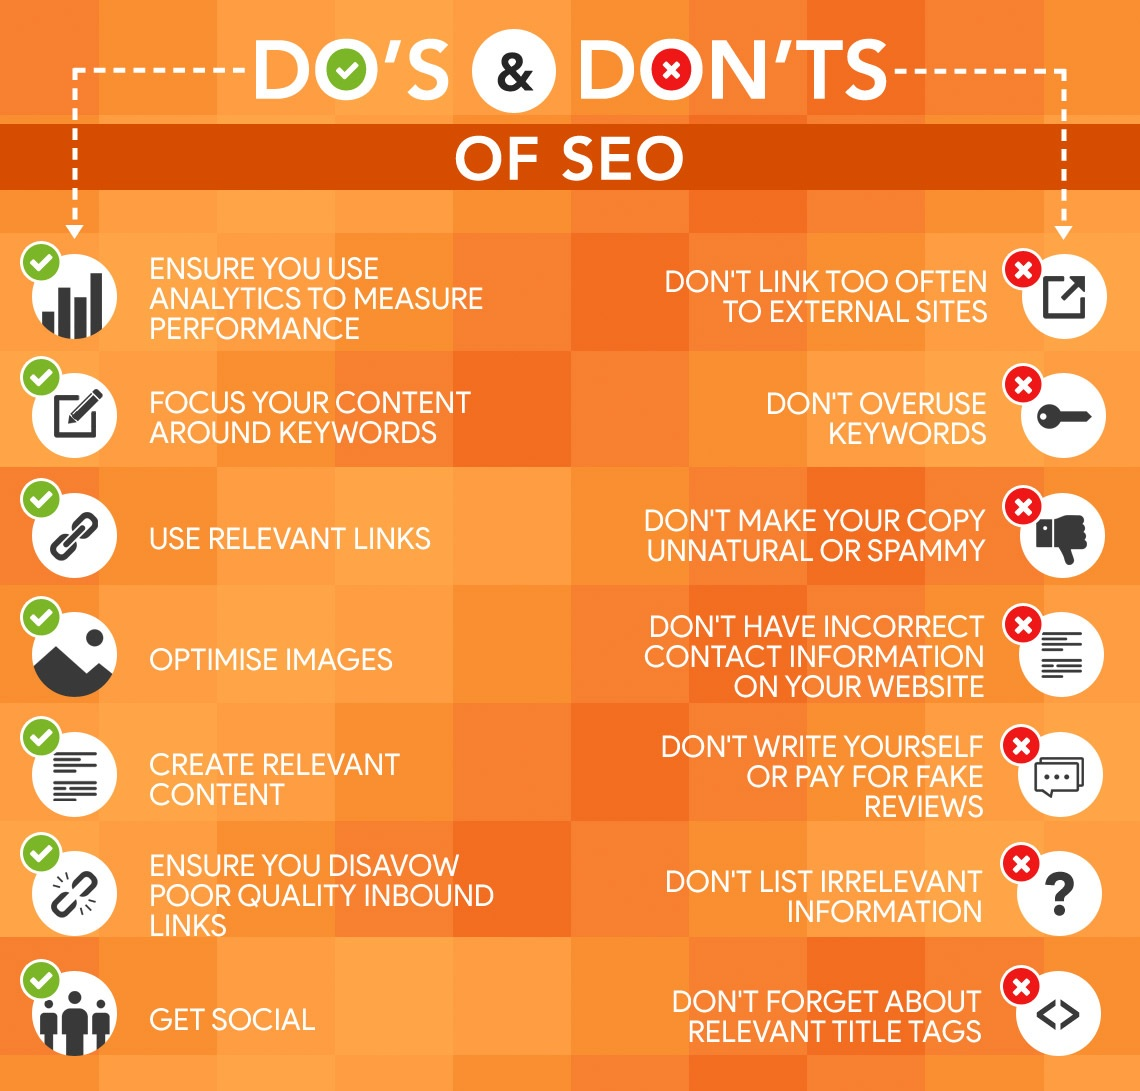 SEO Junkies - Do's and Don'ts of SEO